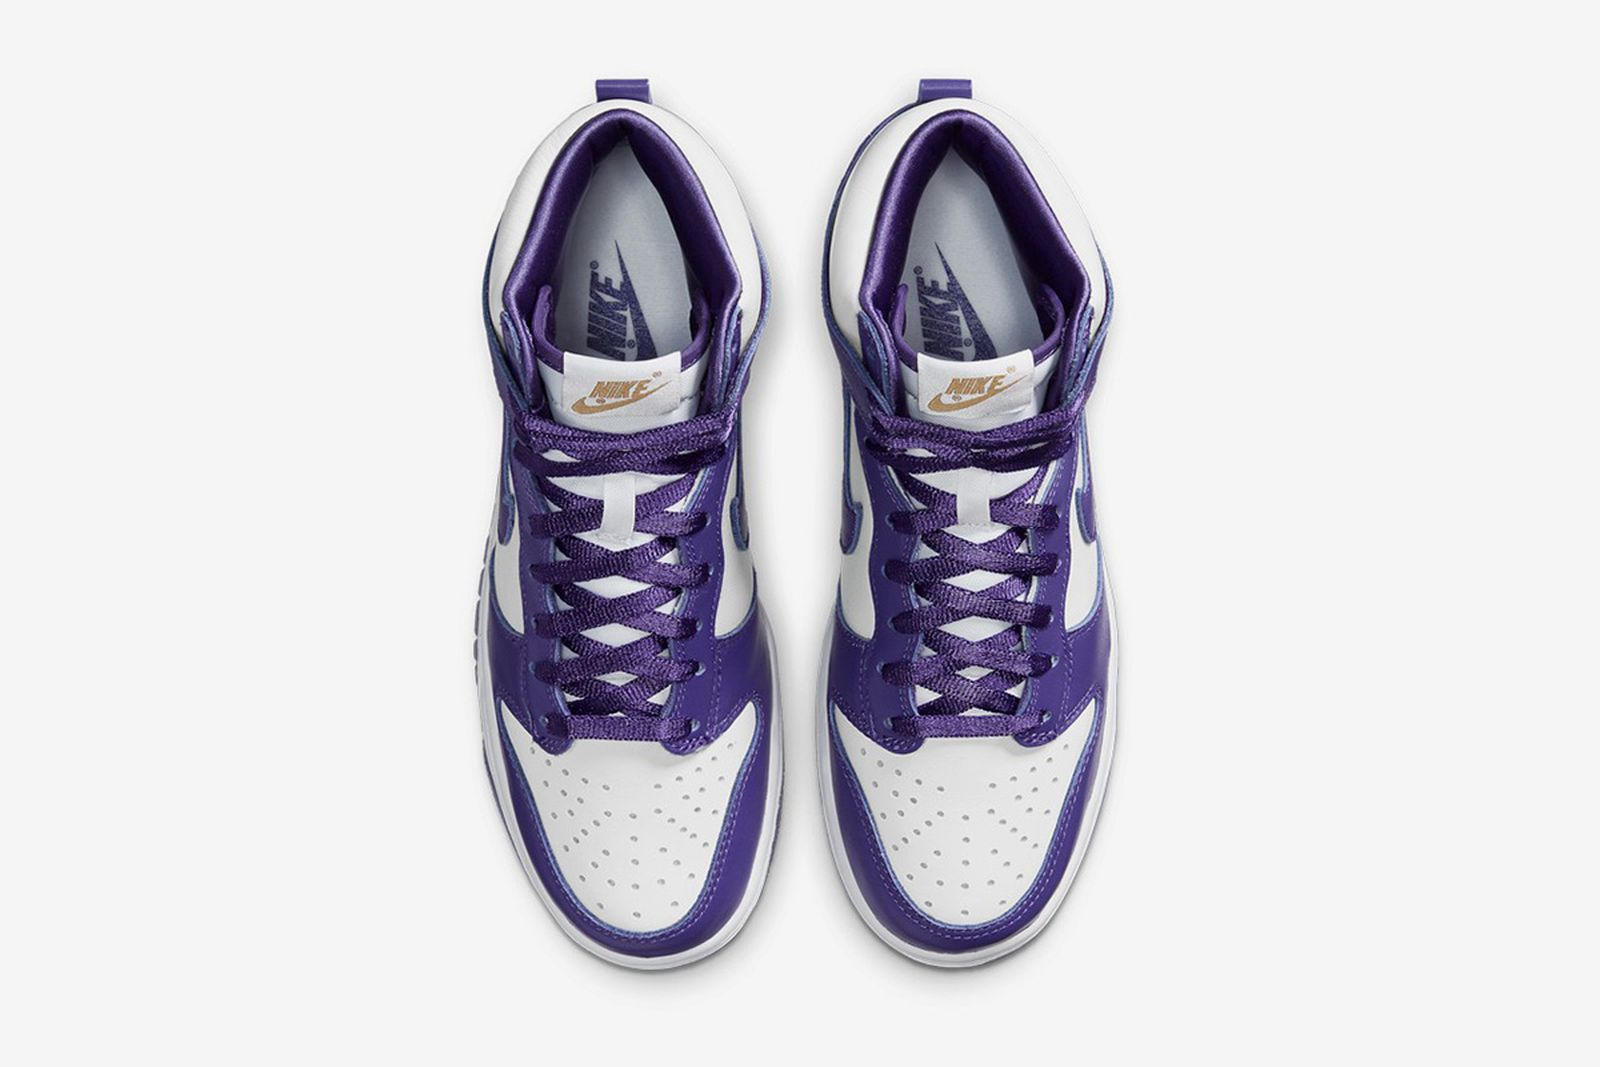 nike-dunk-high-varsity-purple-release-date-price-04